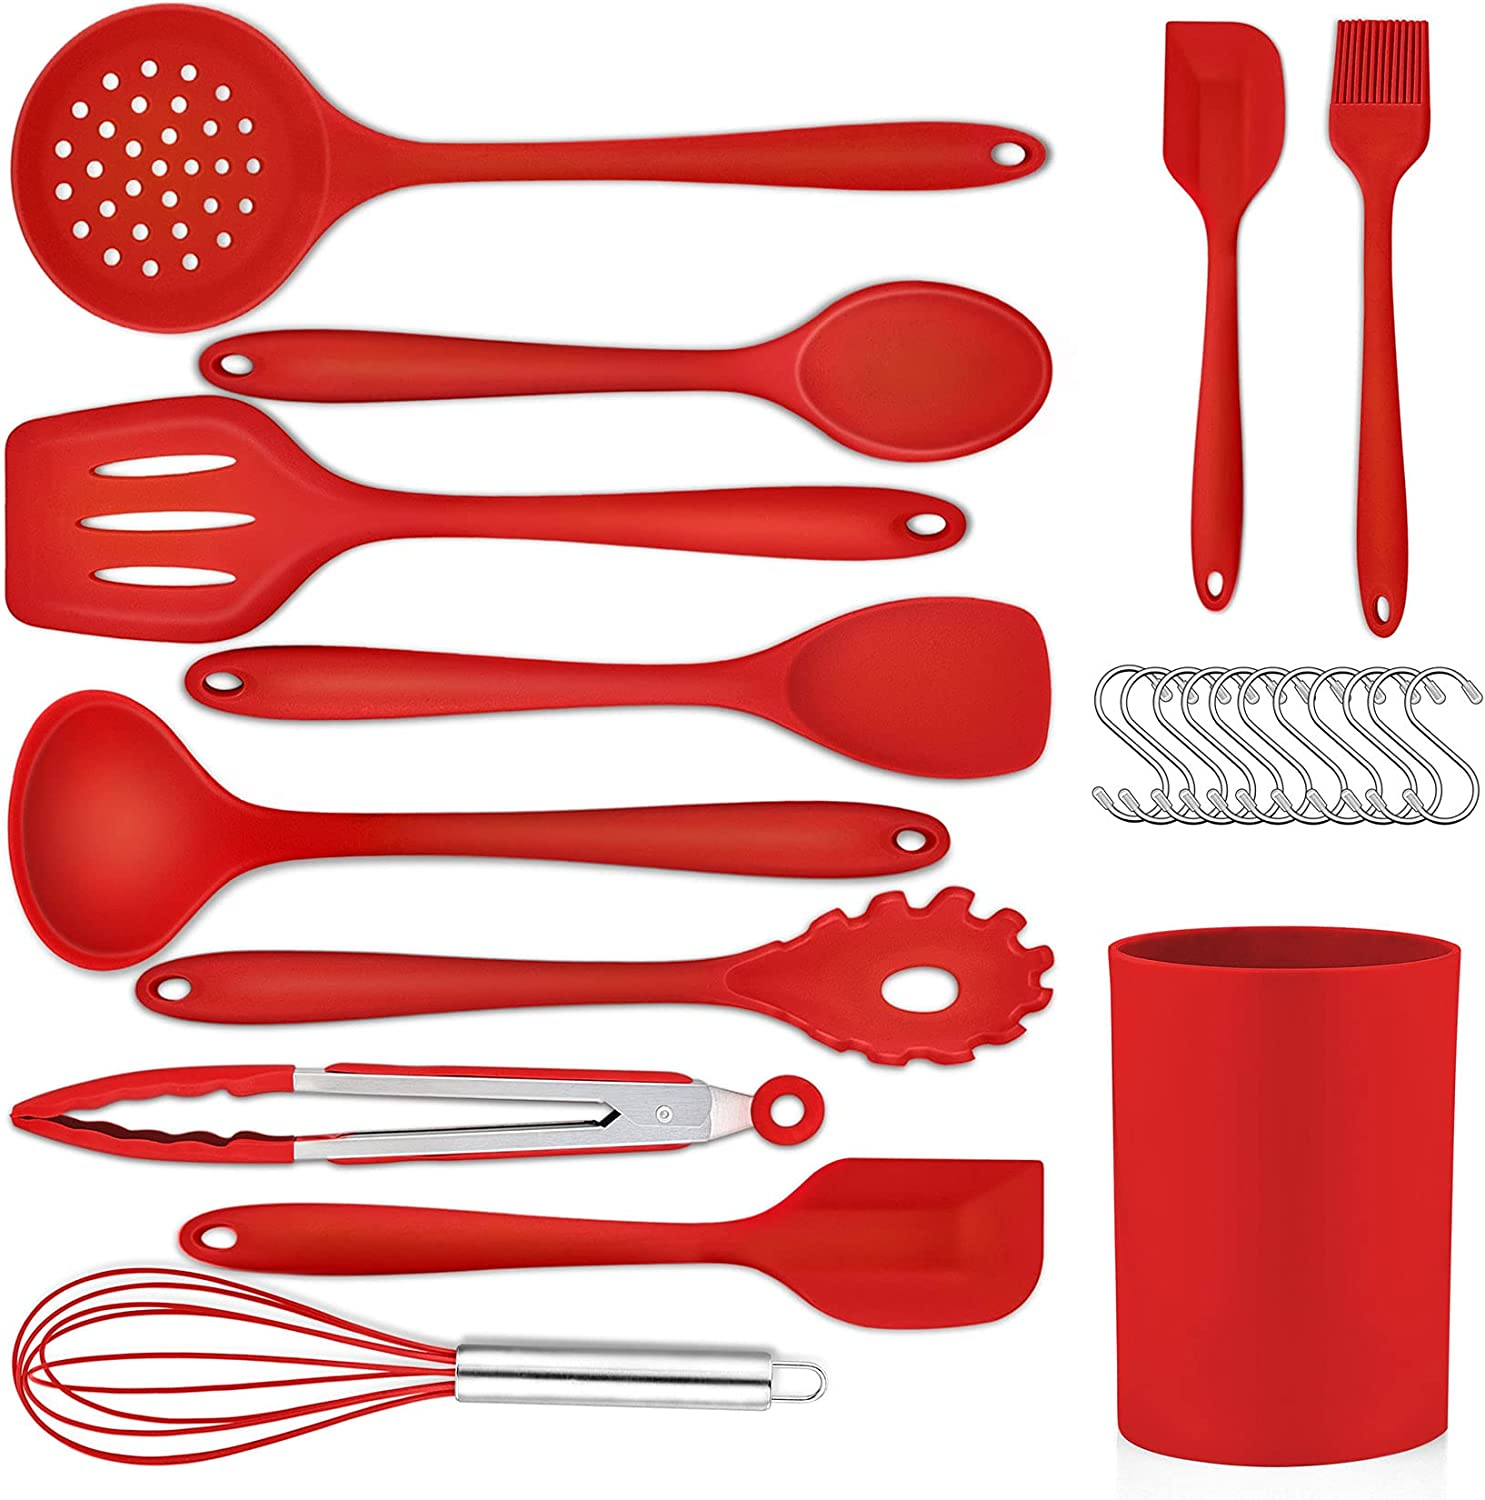 Red Kitchen Cooking Utensils Set- Silicone Free shipping anywhere Brand new in the nation CHEF Baki 23Pcs PP